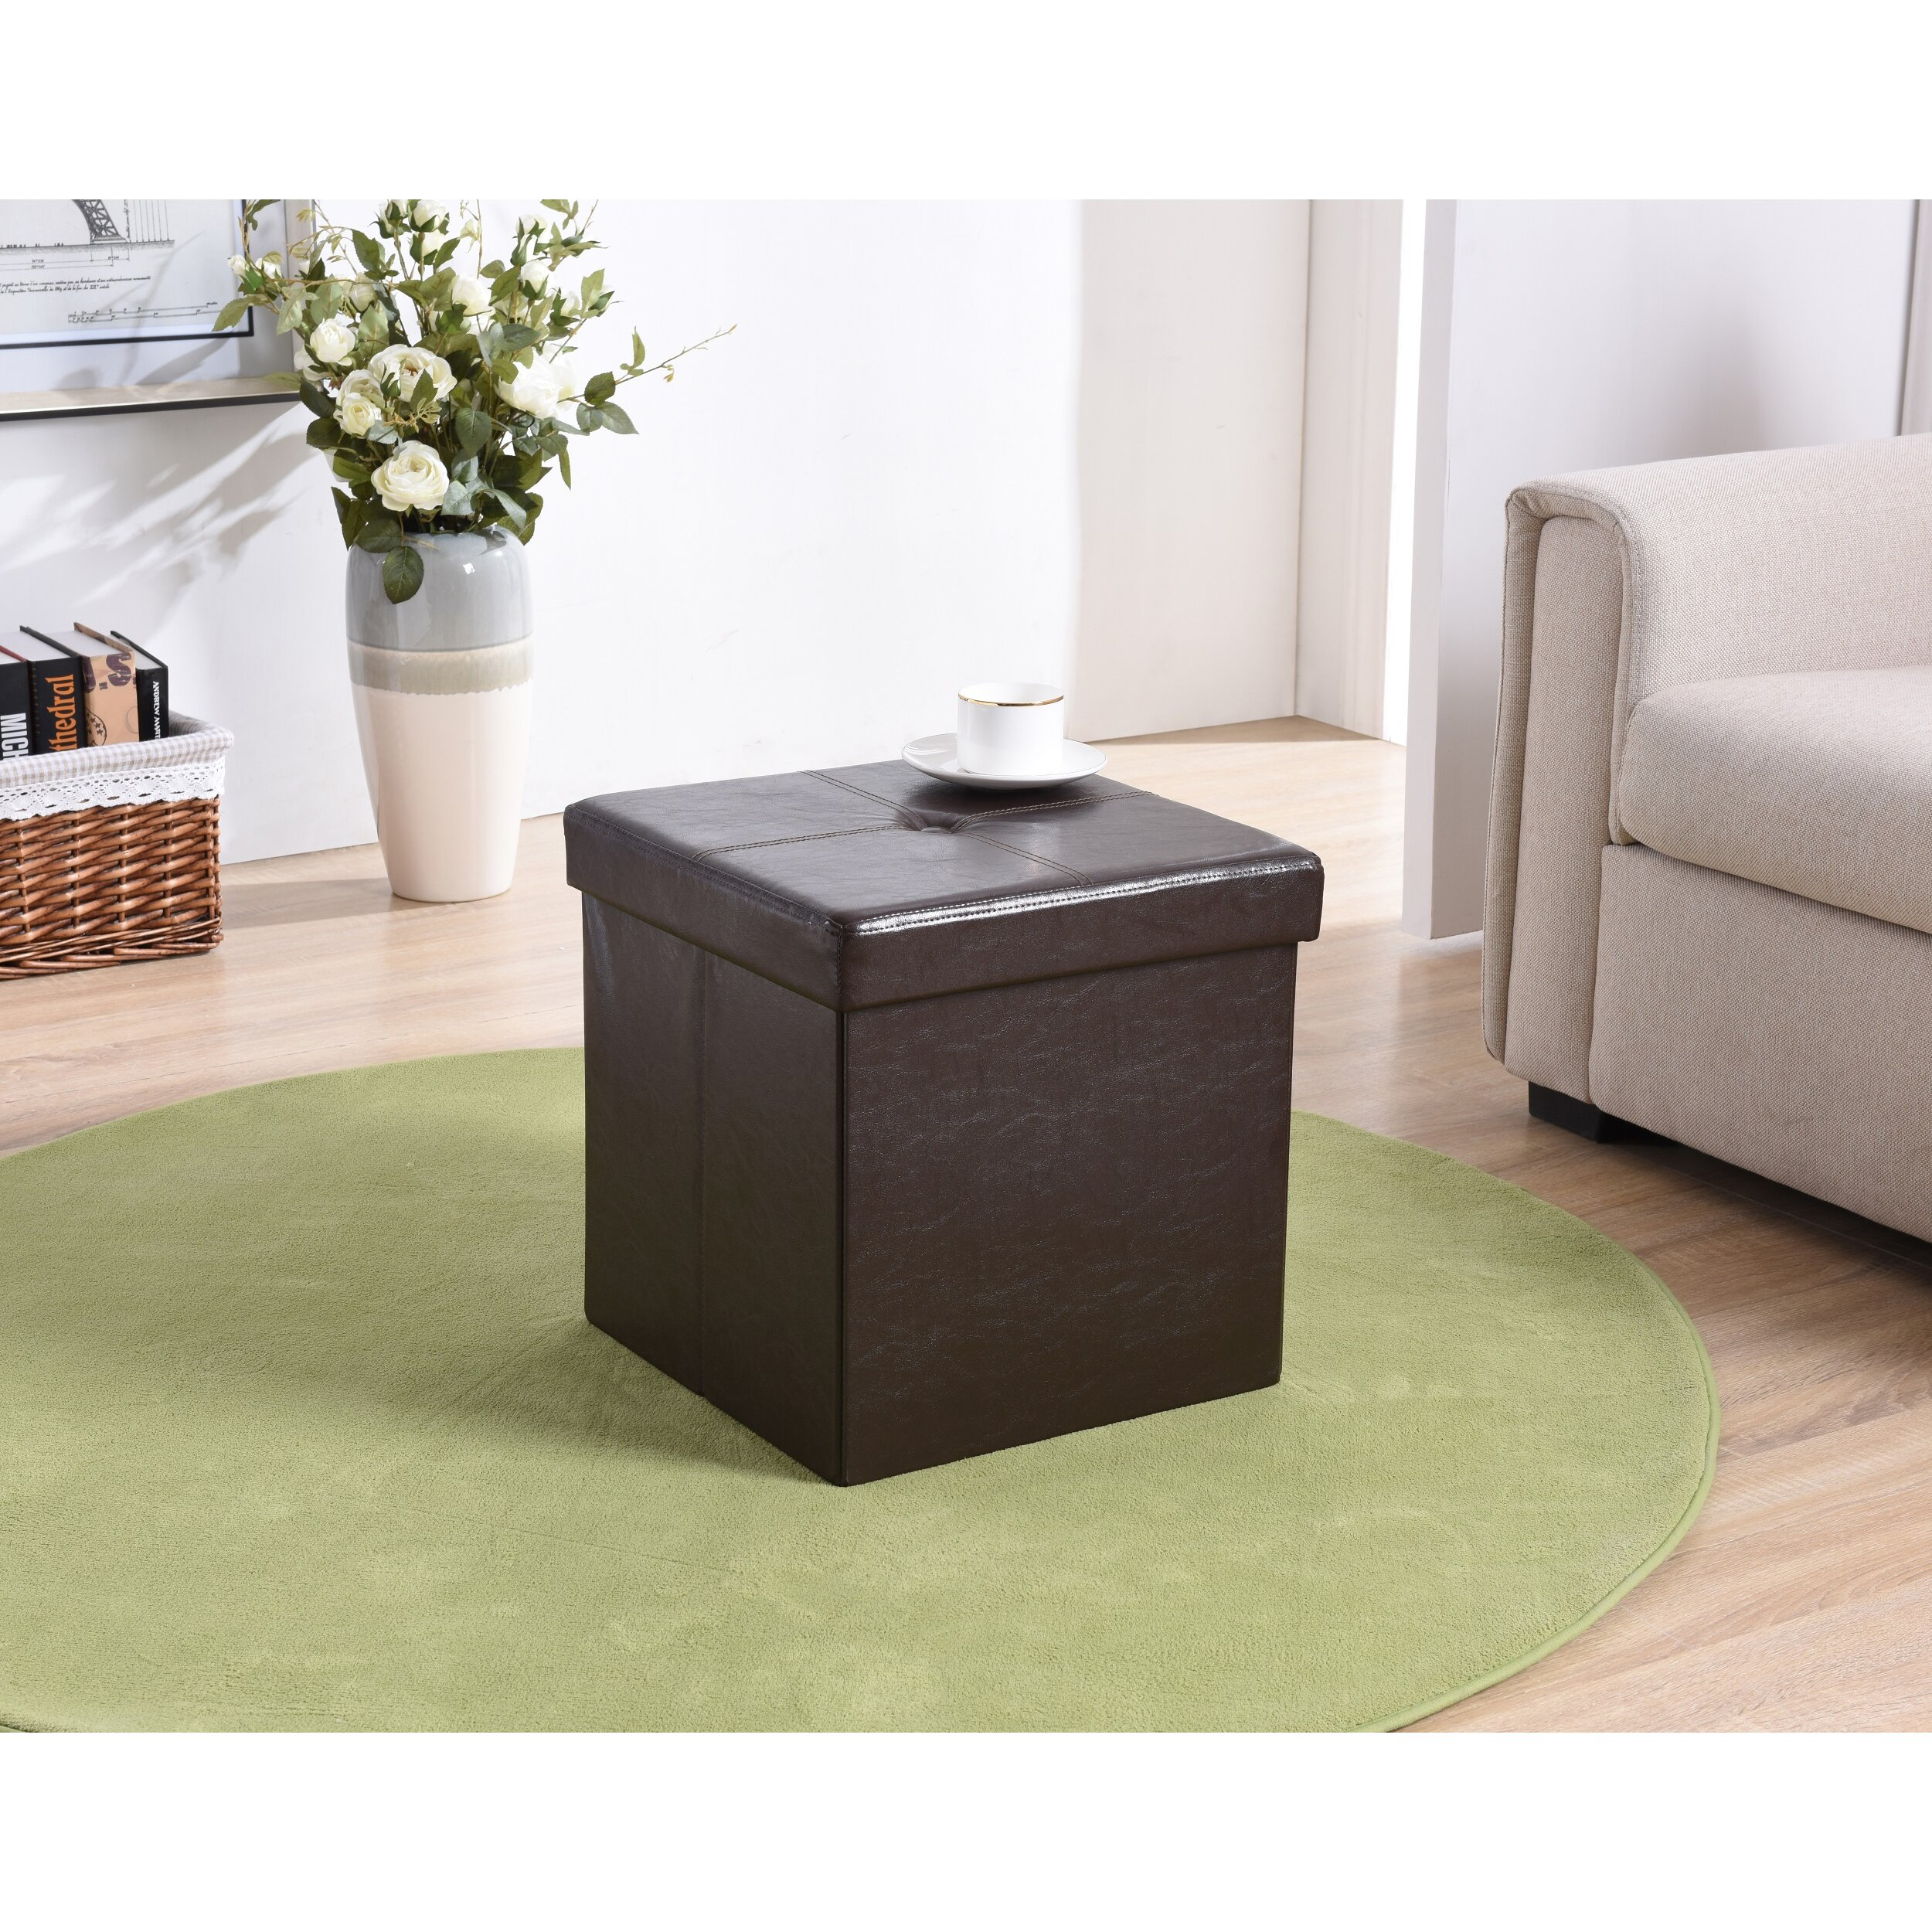 Andover Mills Carisbrooke Cube Upholstered Storage Ottoman